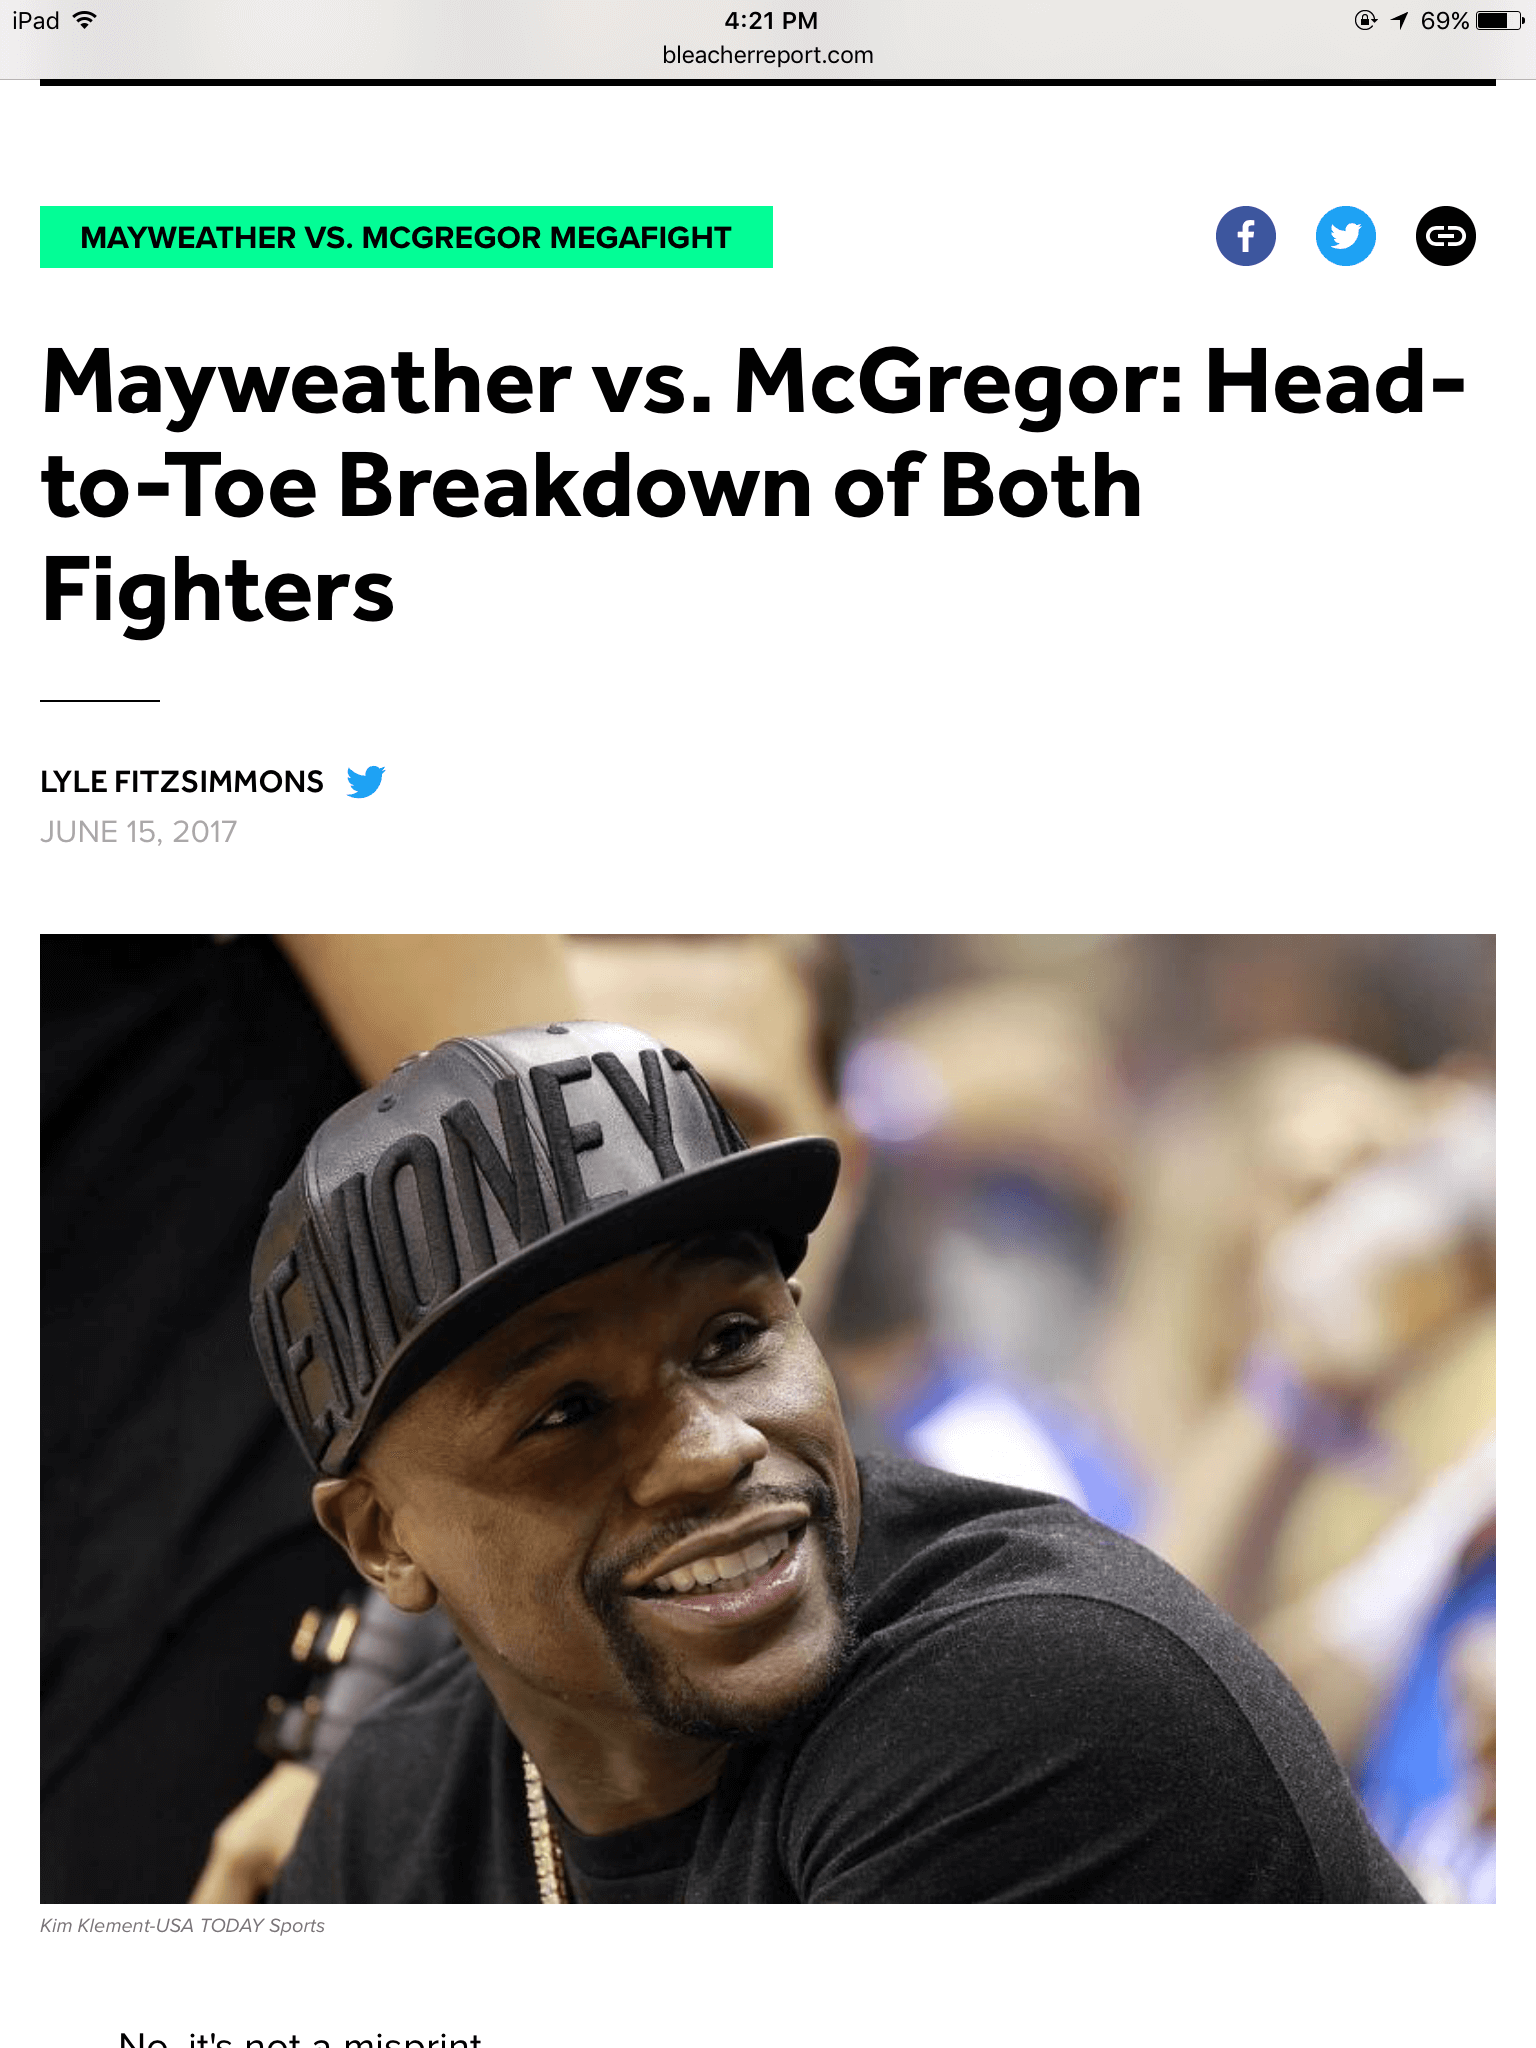 McGregor vs Mayweather Jr. Hot Take Tracker